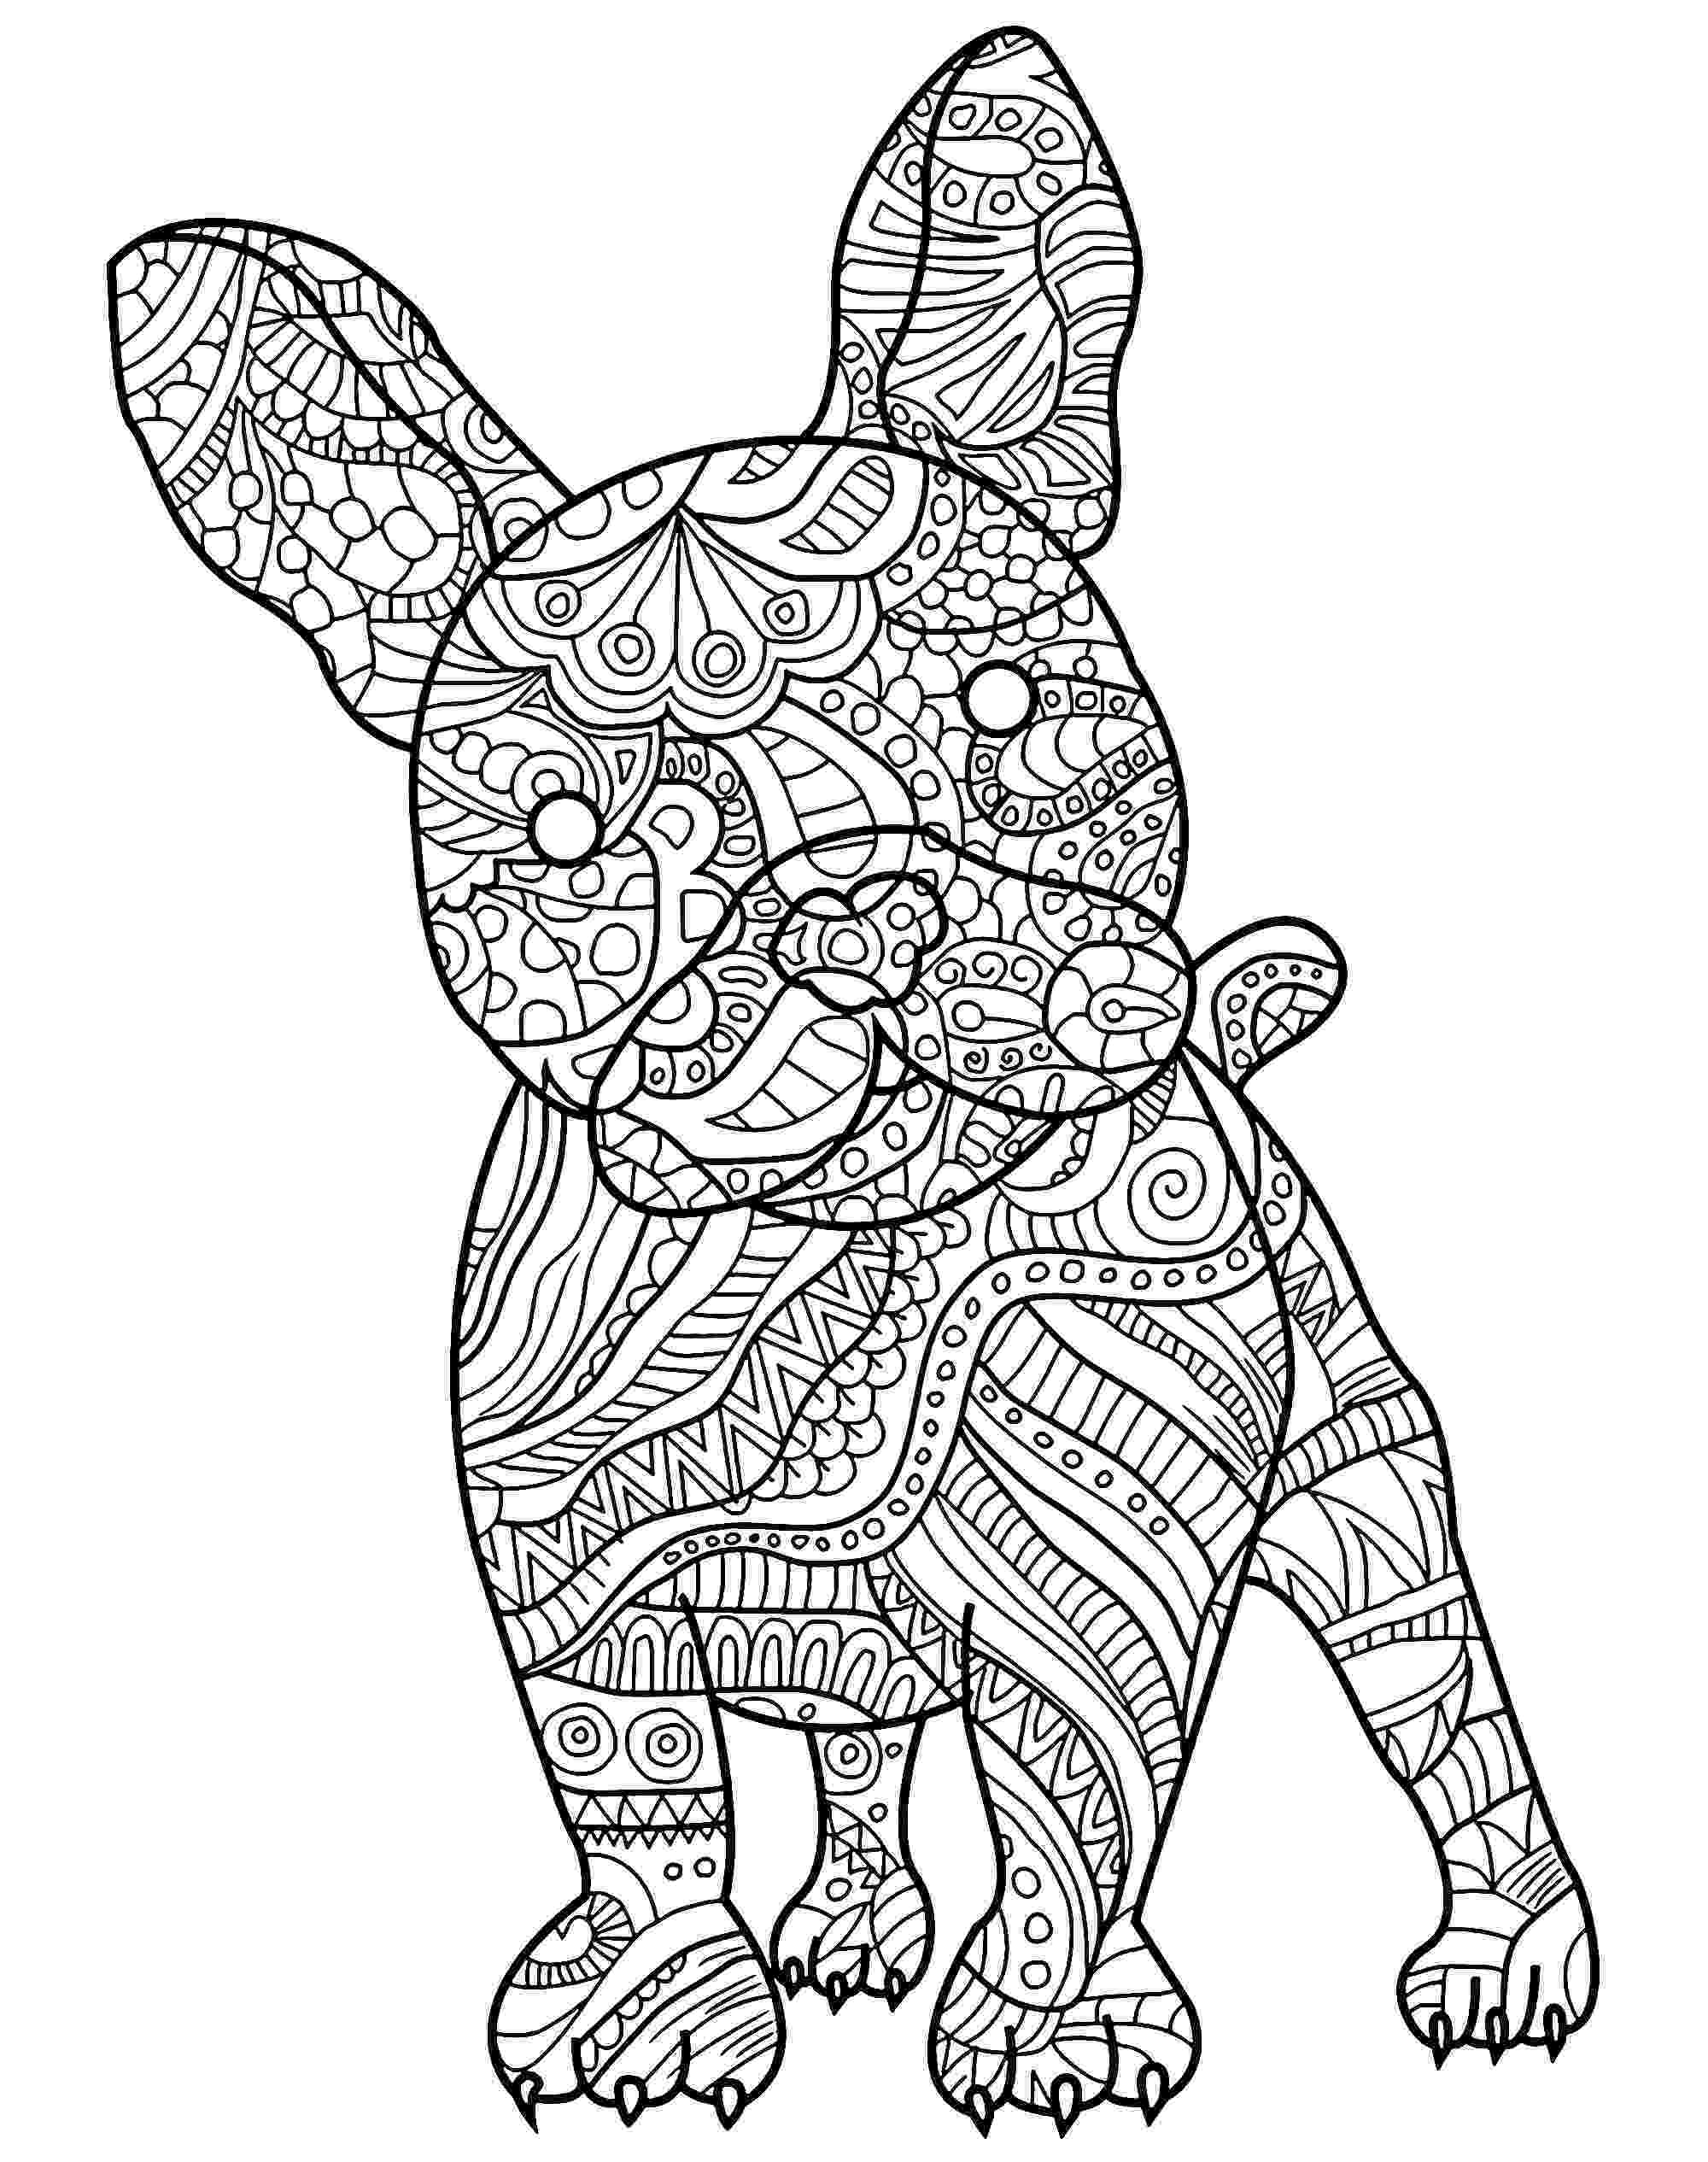 colouring page of dog nyn minha yorkshire 010 cachorros fofos para imprimir page colouring of dog